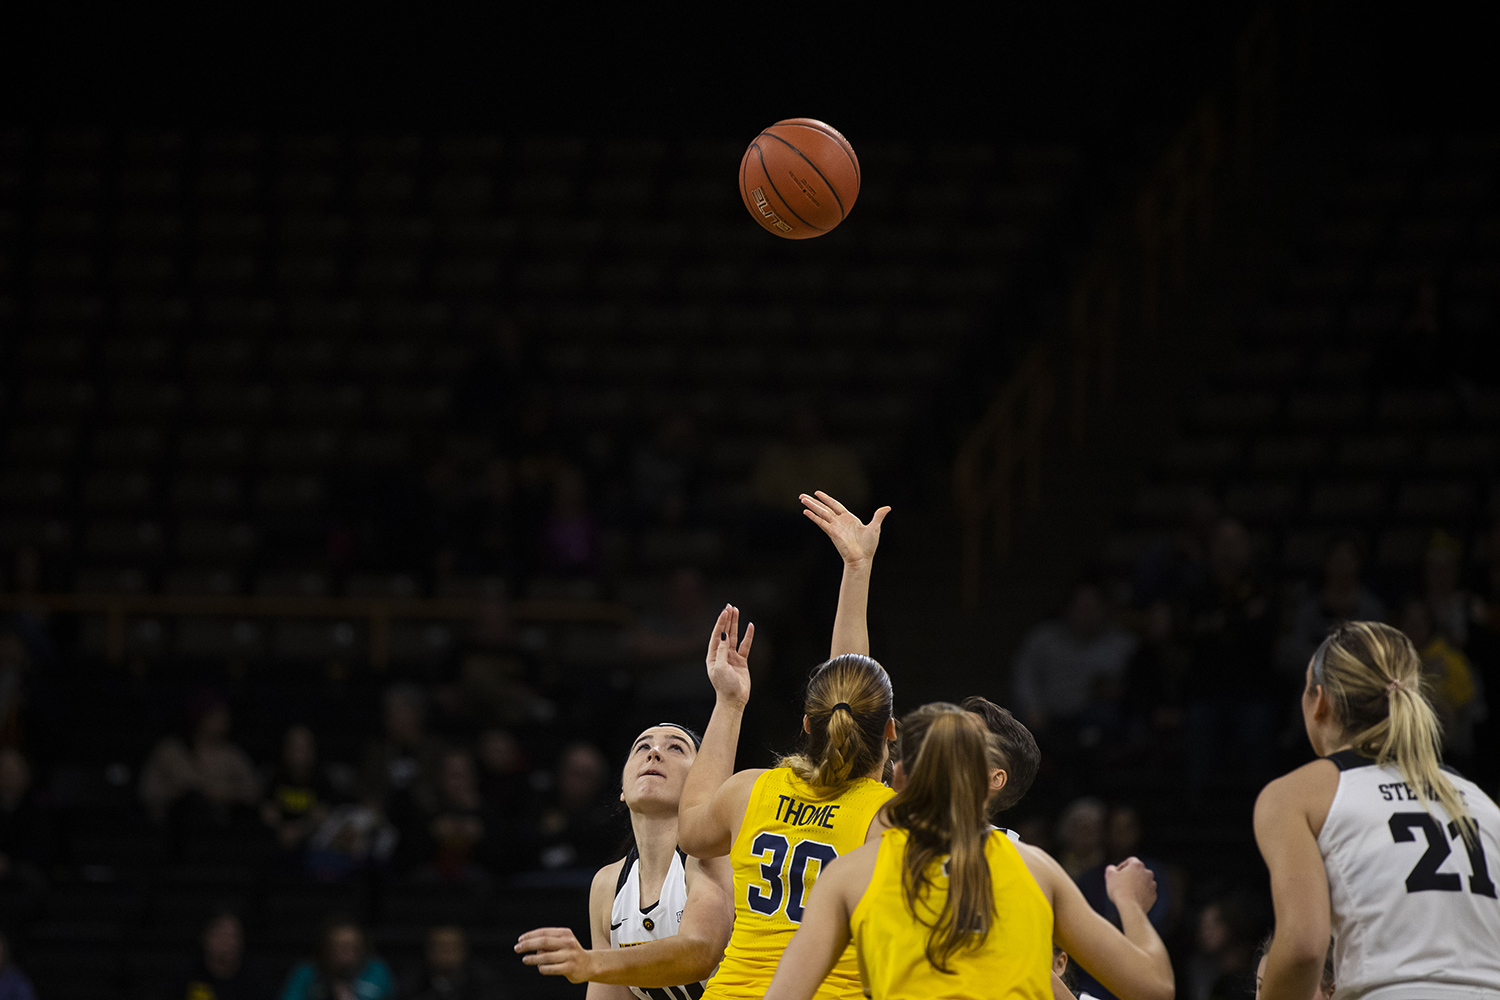 Iowa+and+Michigan+players+prepare+for+tipoff+during+the+Iowa%2FMichigan+women%27s+basketball+game+at+Carver-Hawkeye+Arena+on+Thursday%2C+January+17%2C+2019.+The+Hawkeyes+defeated+the+Wolverines%2C+75-61.+